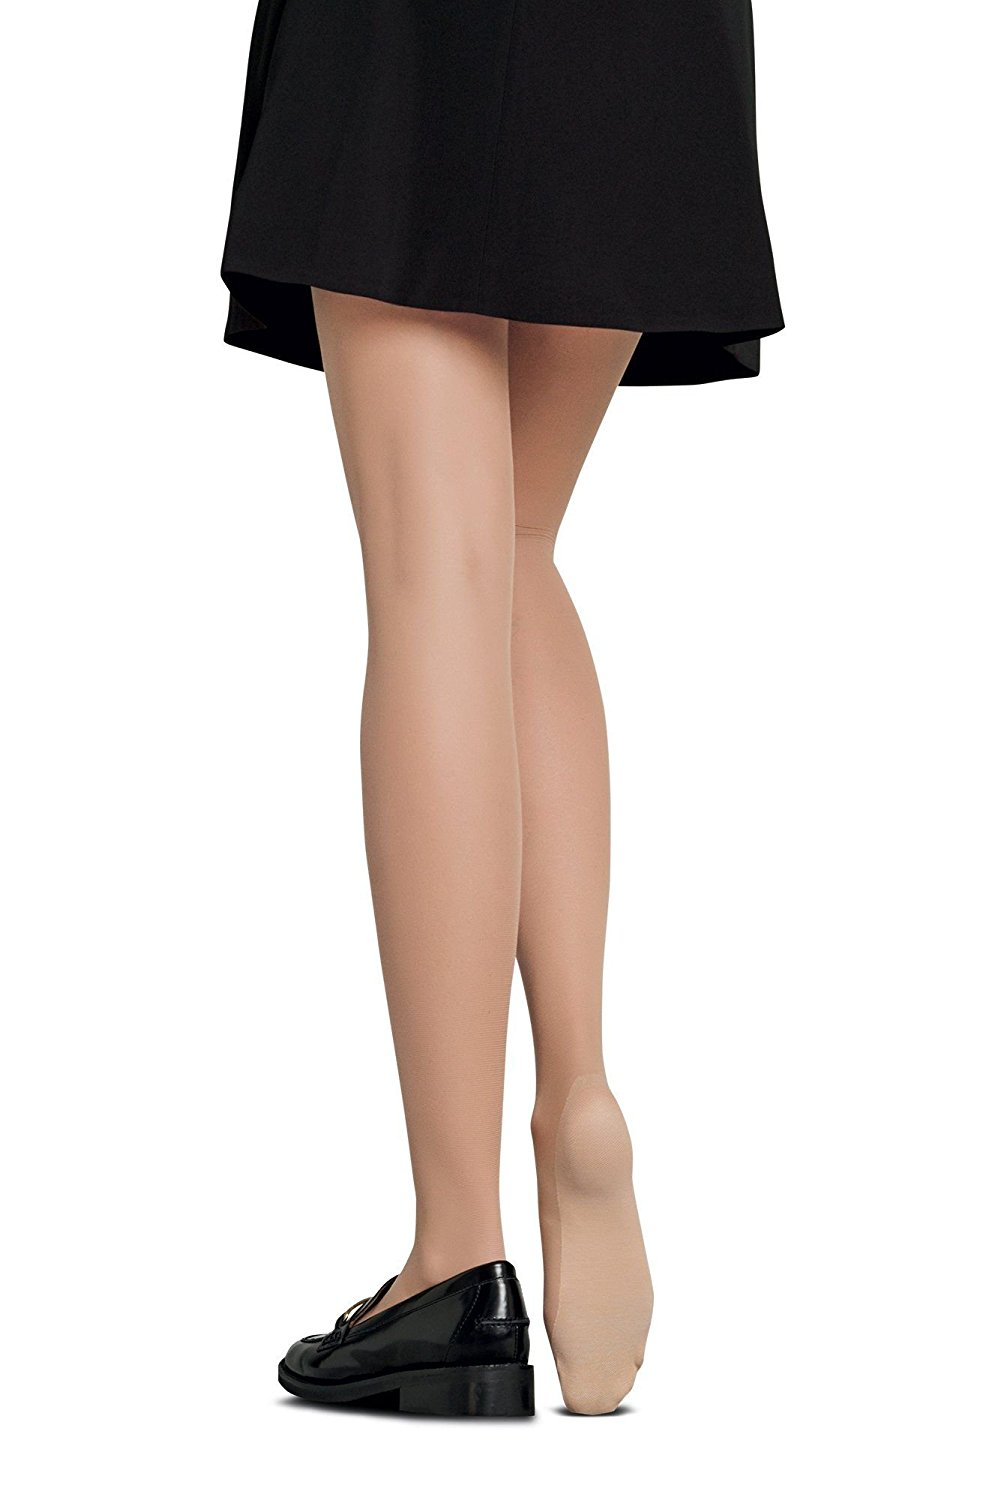 482b7d7da Get Quotations · Comfort and Support Anti Ache 30 Denier Pantyhose Tights